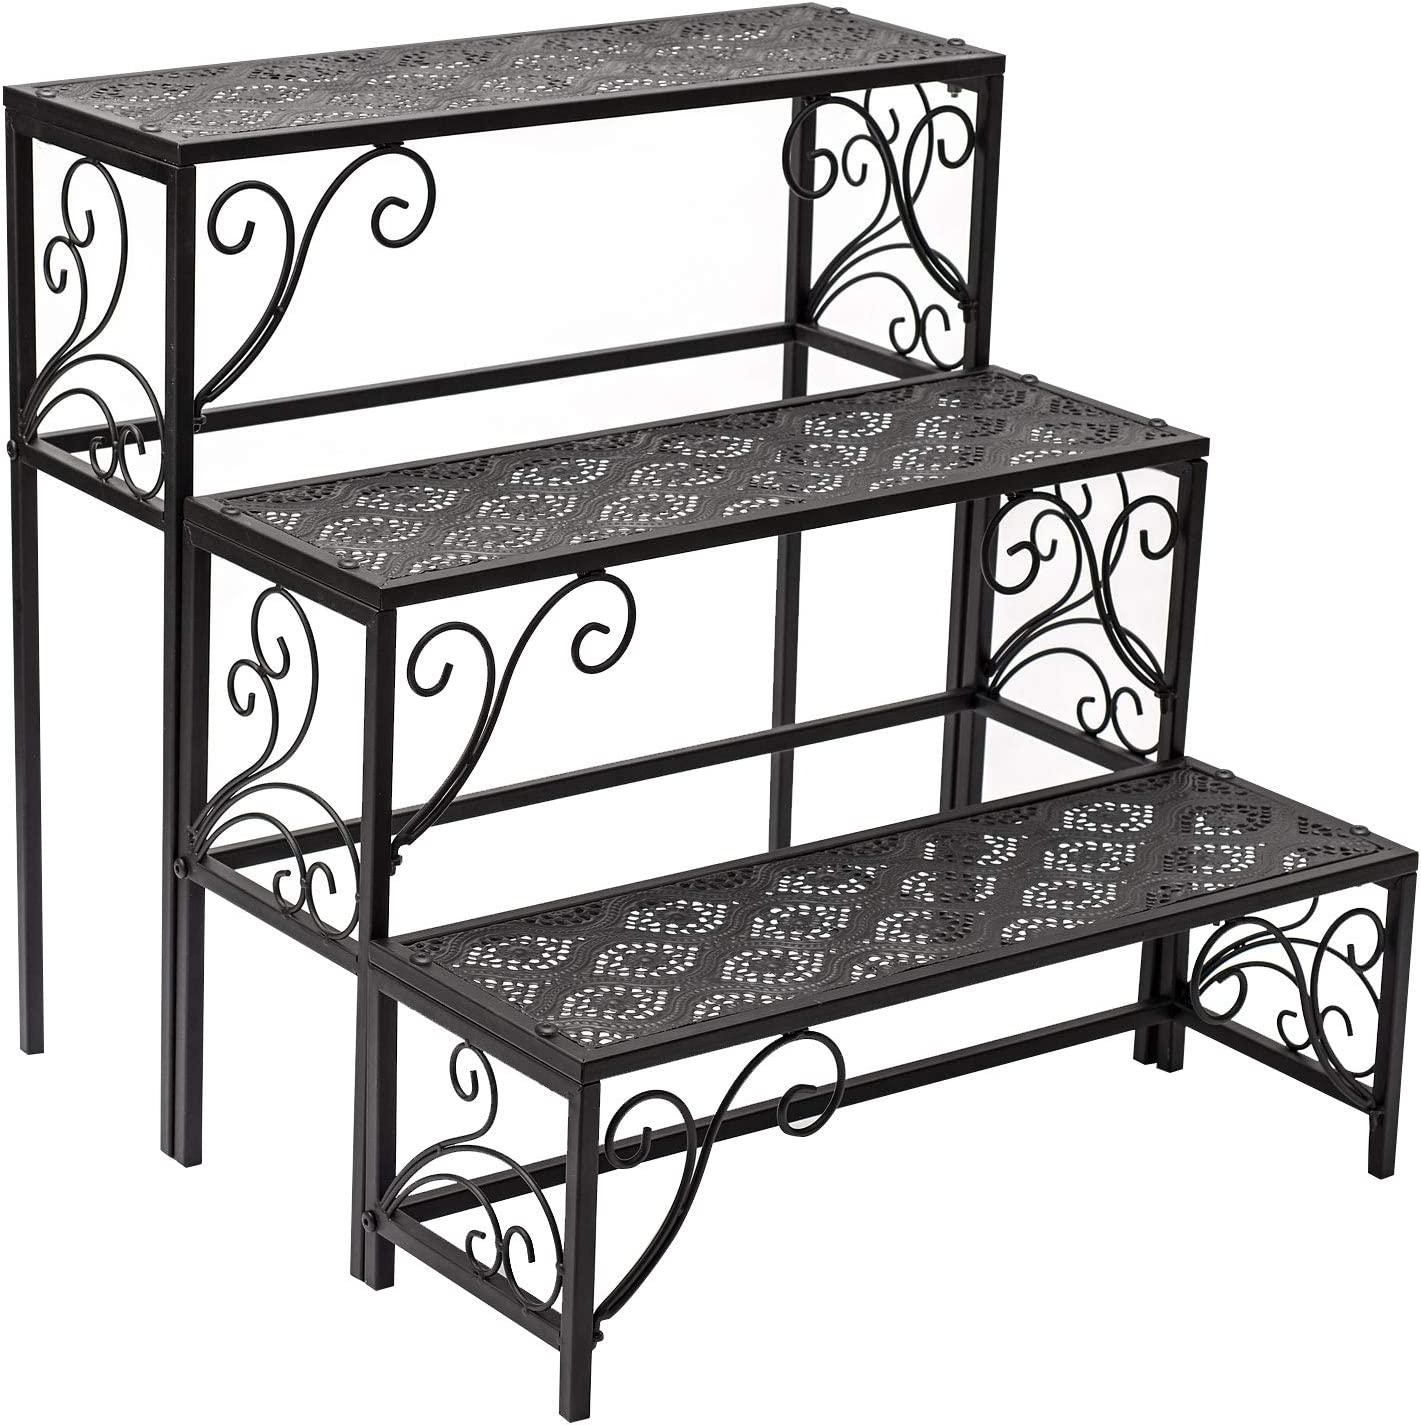 Donosura Potted Plant Stand Stair Plant Holder Outdoor Pot Flower Ladder Rack Nesting Stands Set of 3 Tier Display Furniture for Outside Garden Patio Balcony Adjustable Legs, Metal, Black